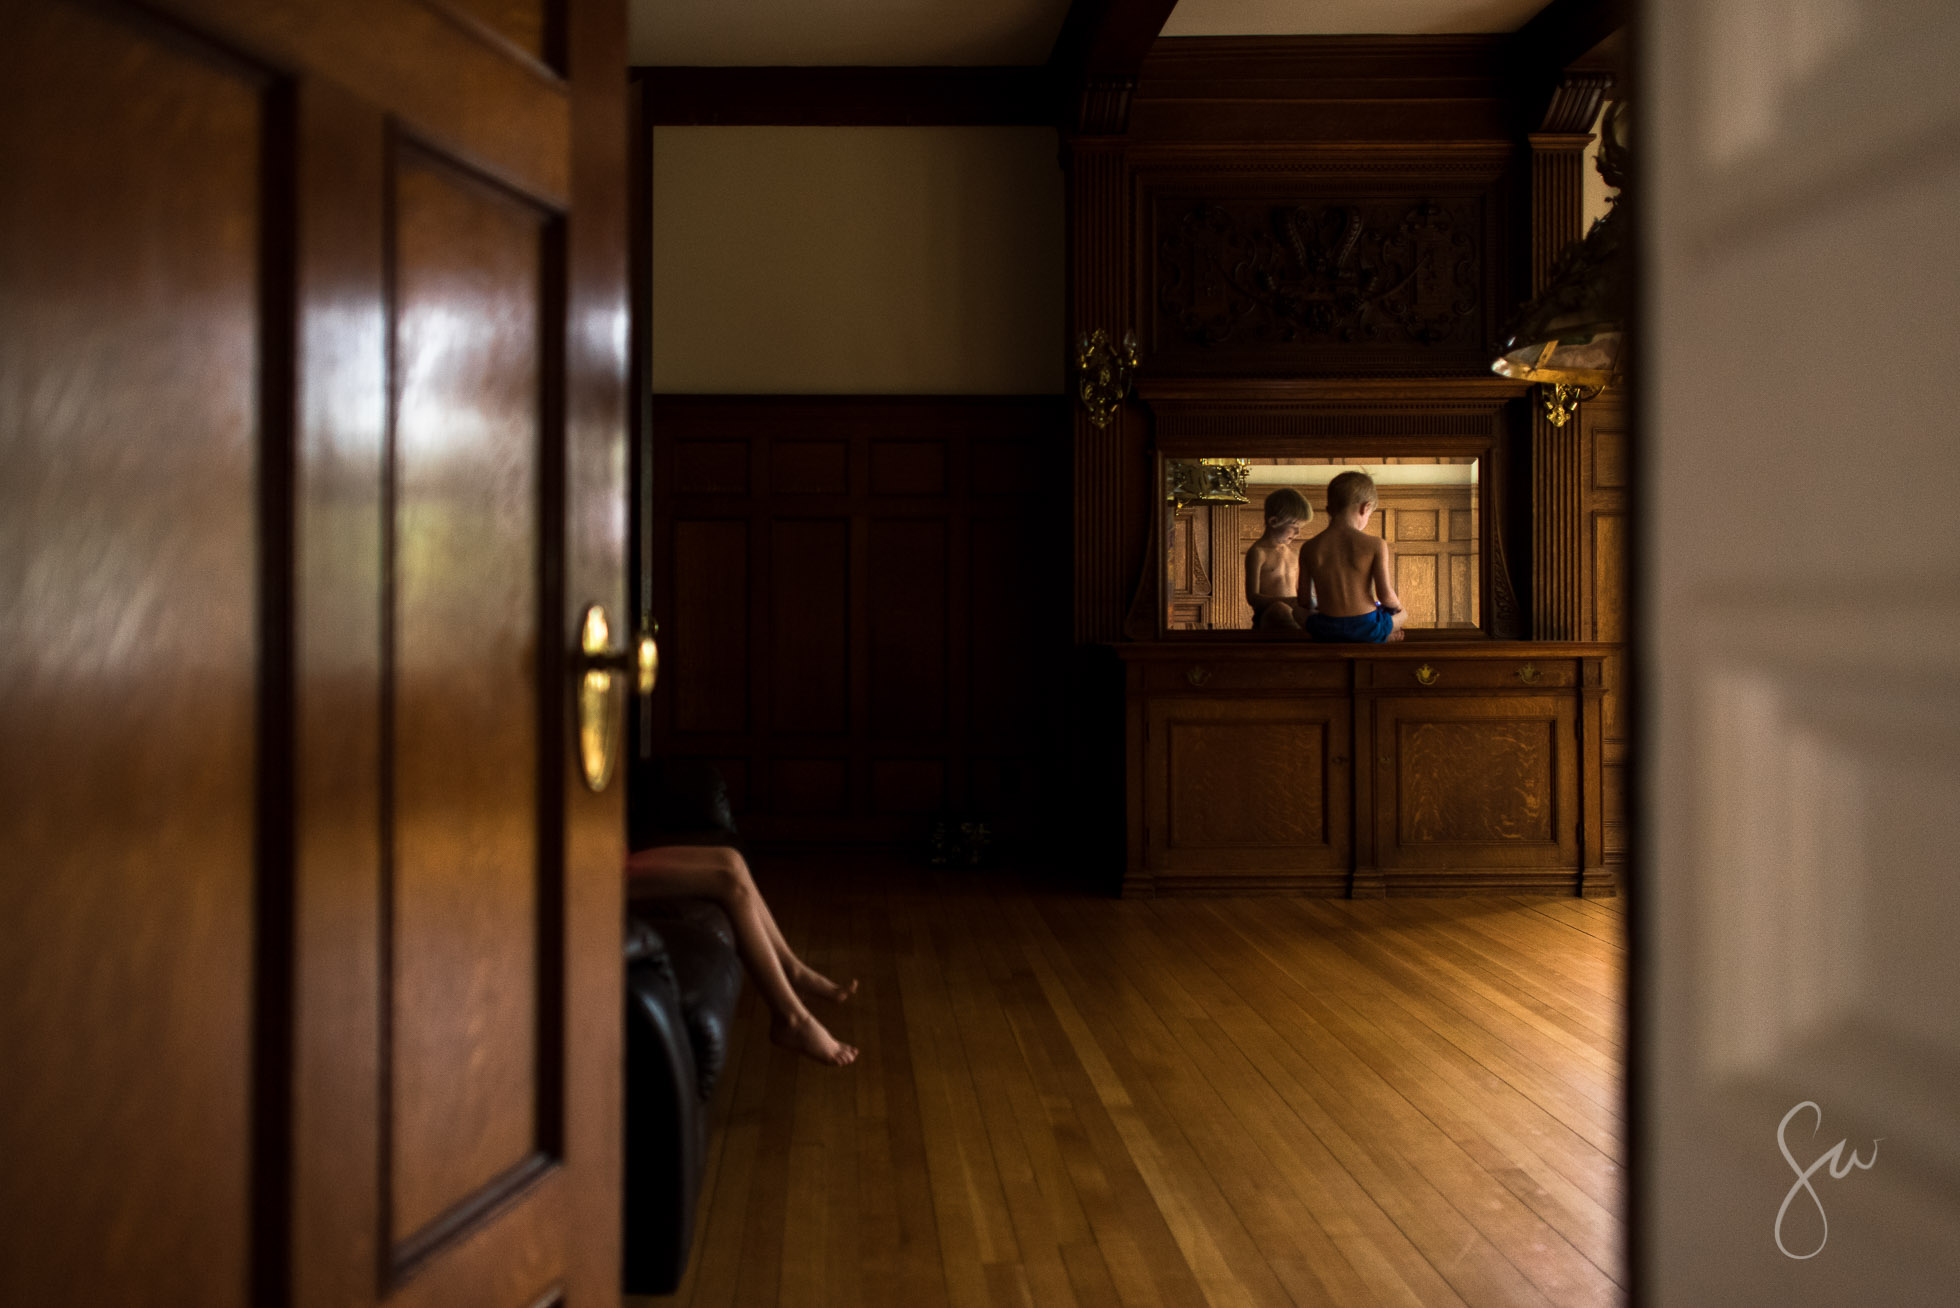 Multilayered-Everyday-Life-Photo-of-Brothers-Playing-in-Old-Fashioned-Wooden-Room-1309